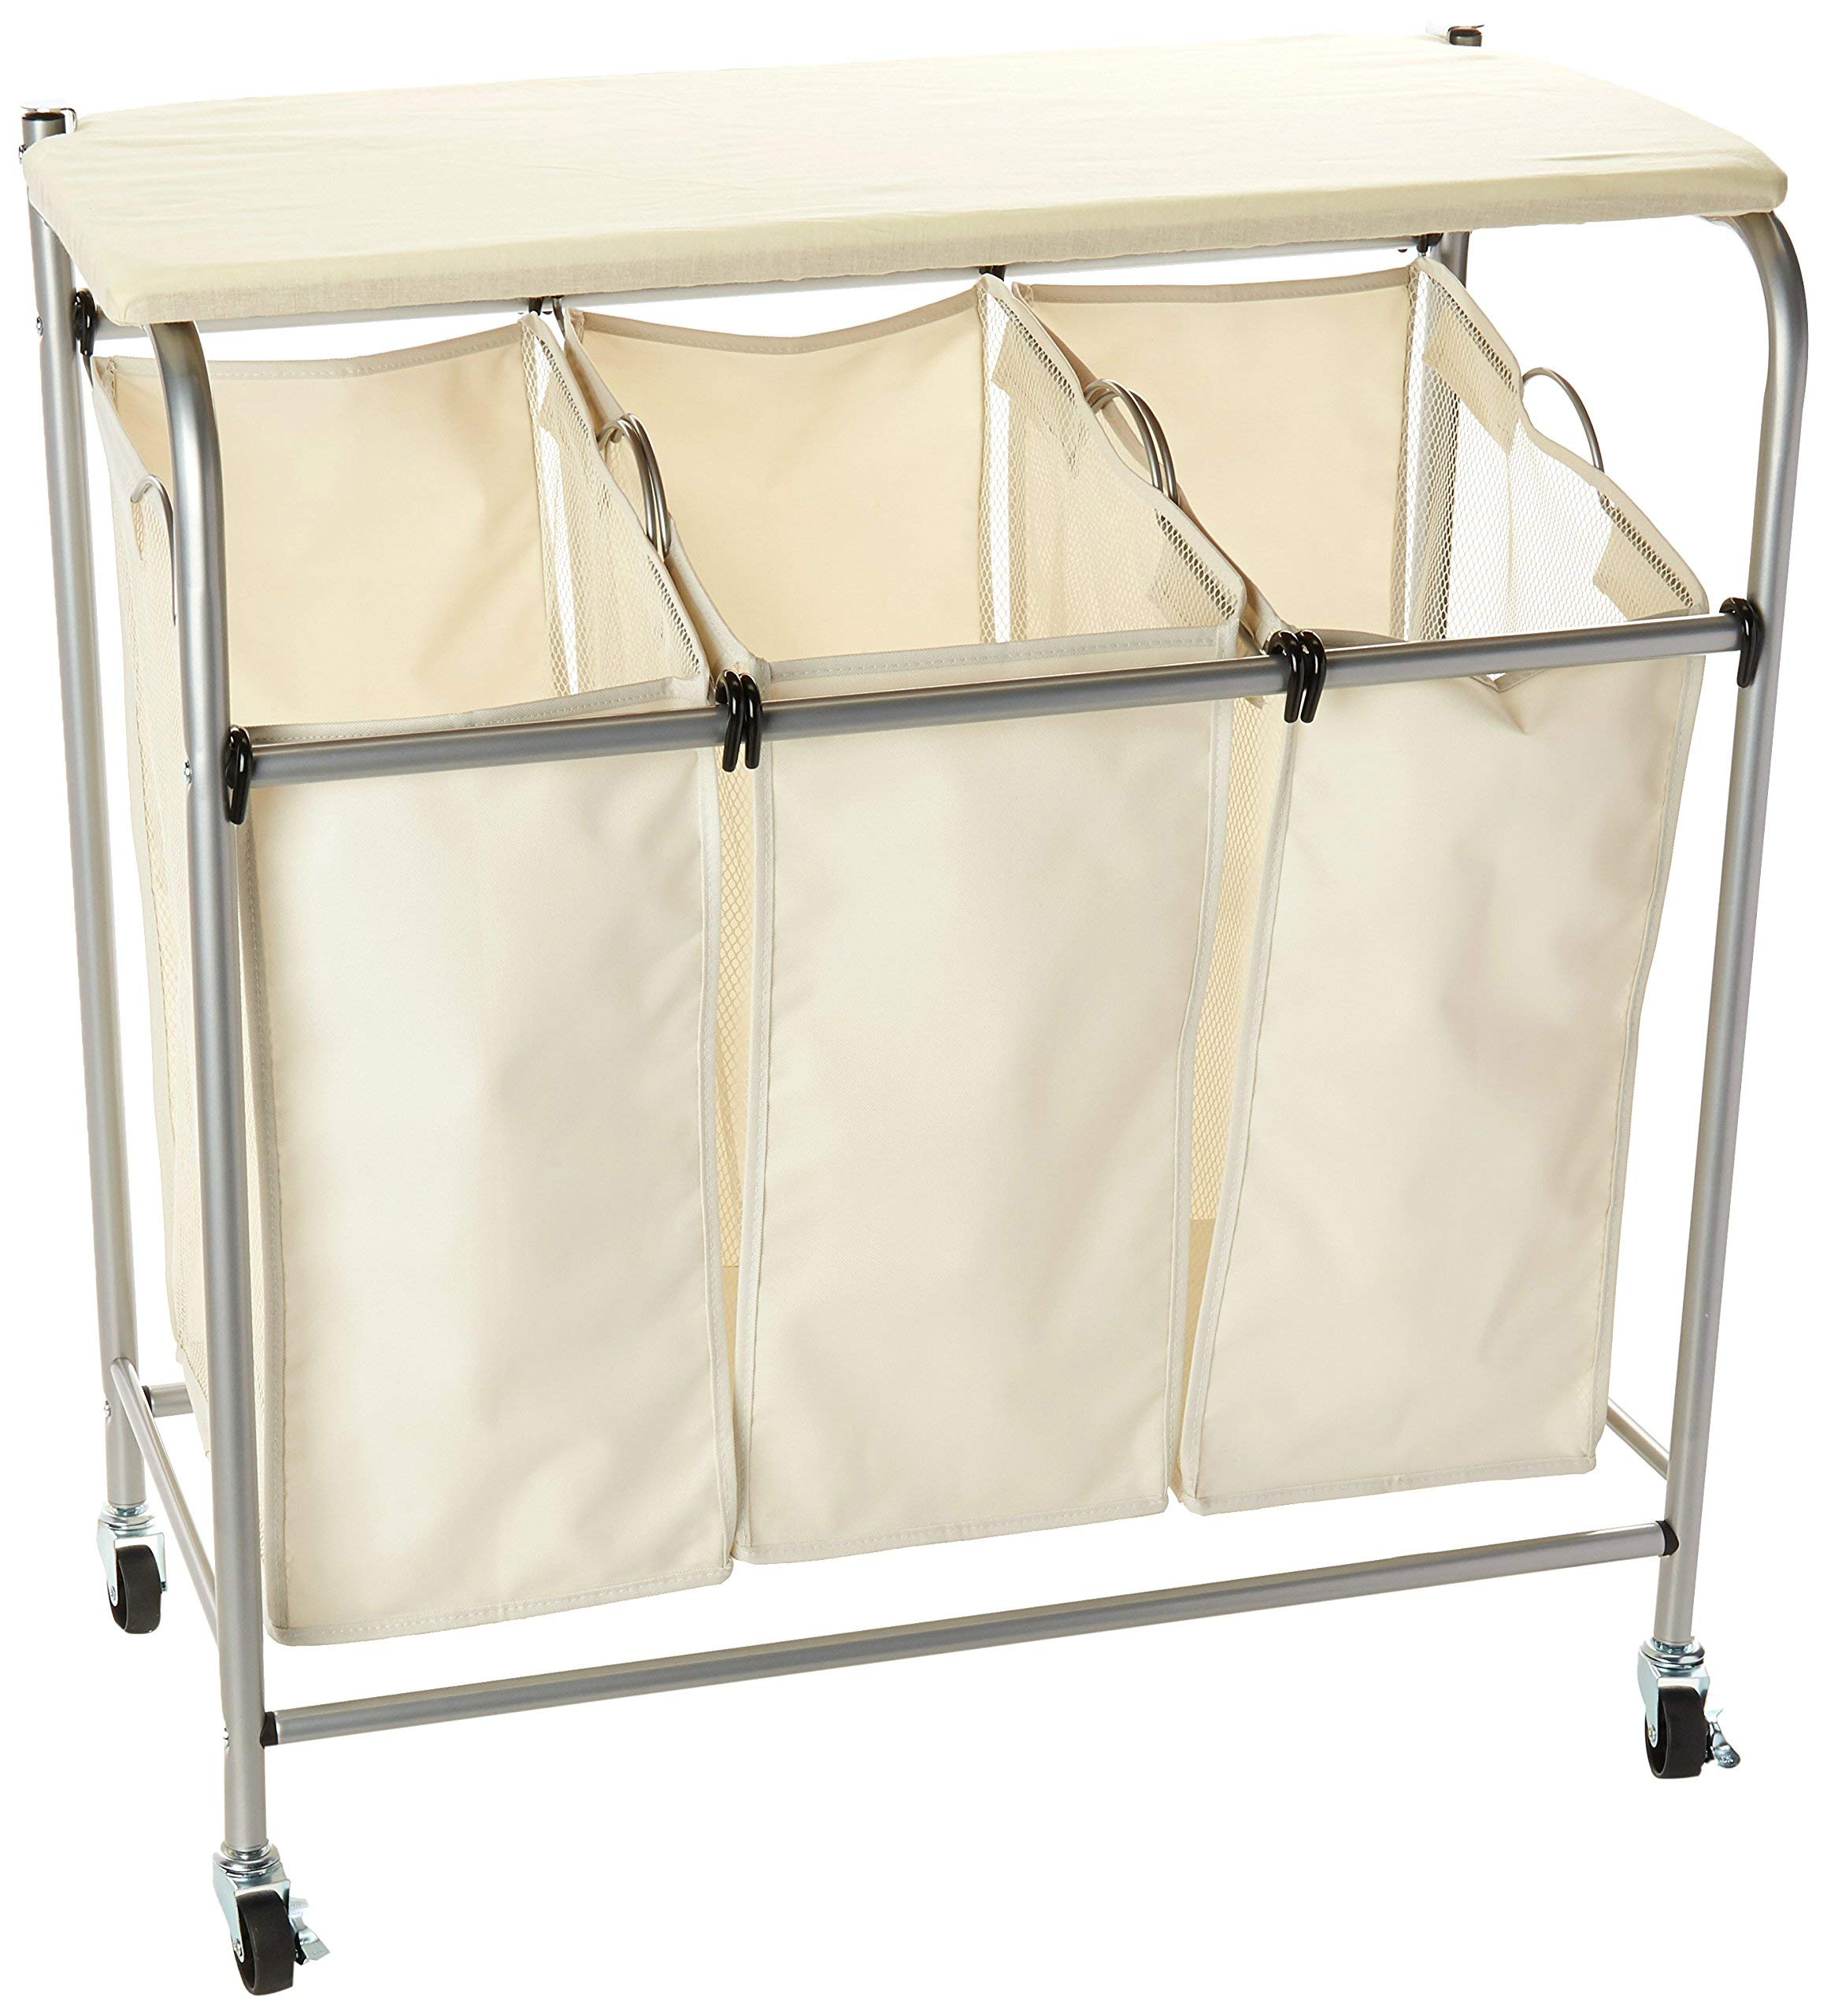 Honey-Can-Do Rolling Laundry Sorter with Ironing Board by Honey-Can-Do